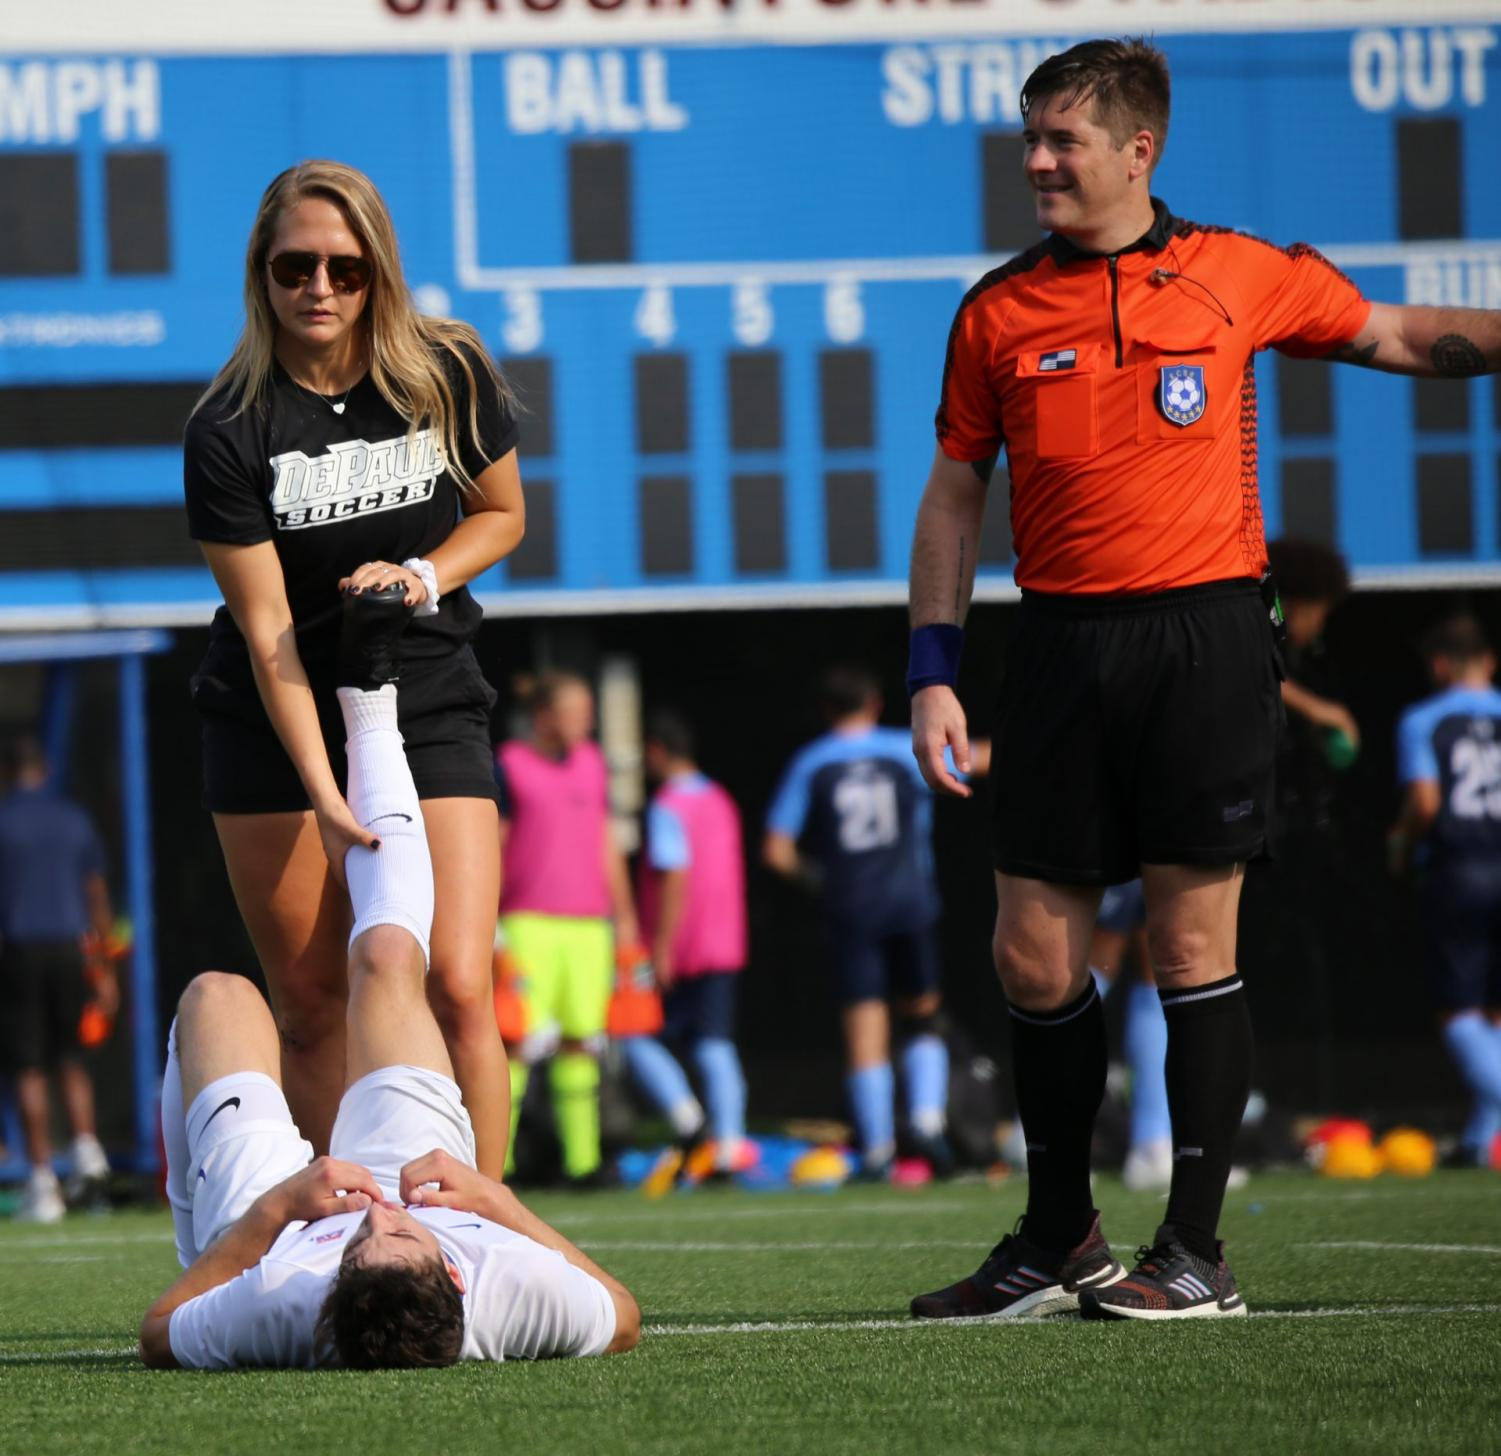 Allison Podborny stretches out an injured DePaul men's soccer player during a contest against Villanova on Friday, Sept. 20 at Wish Field.